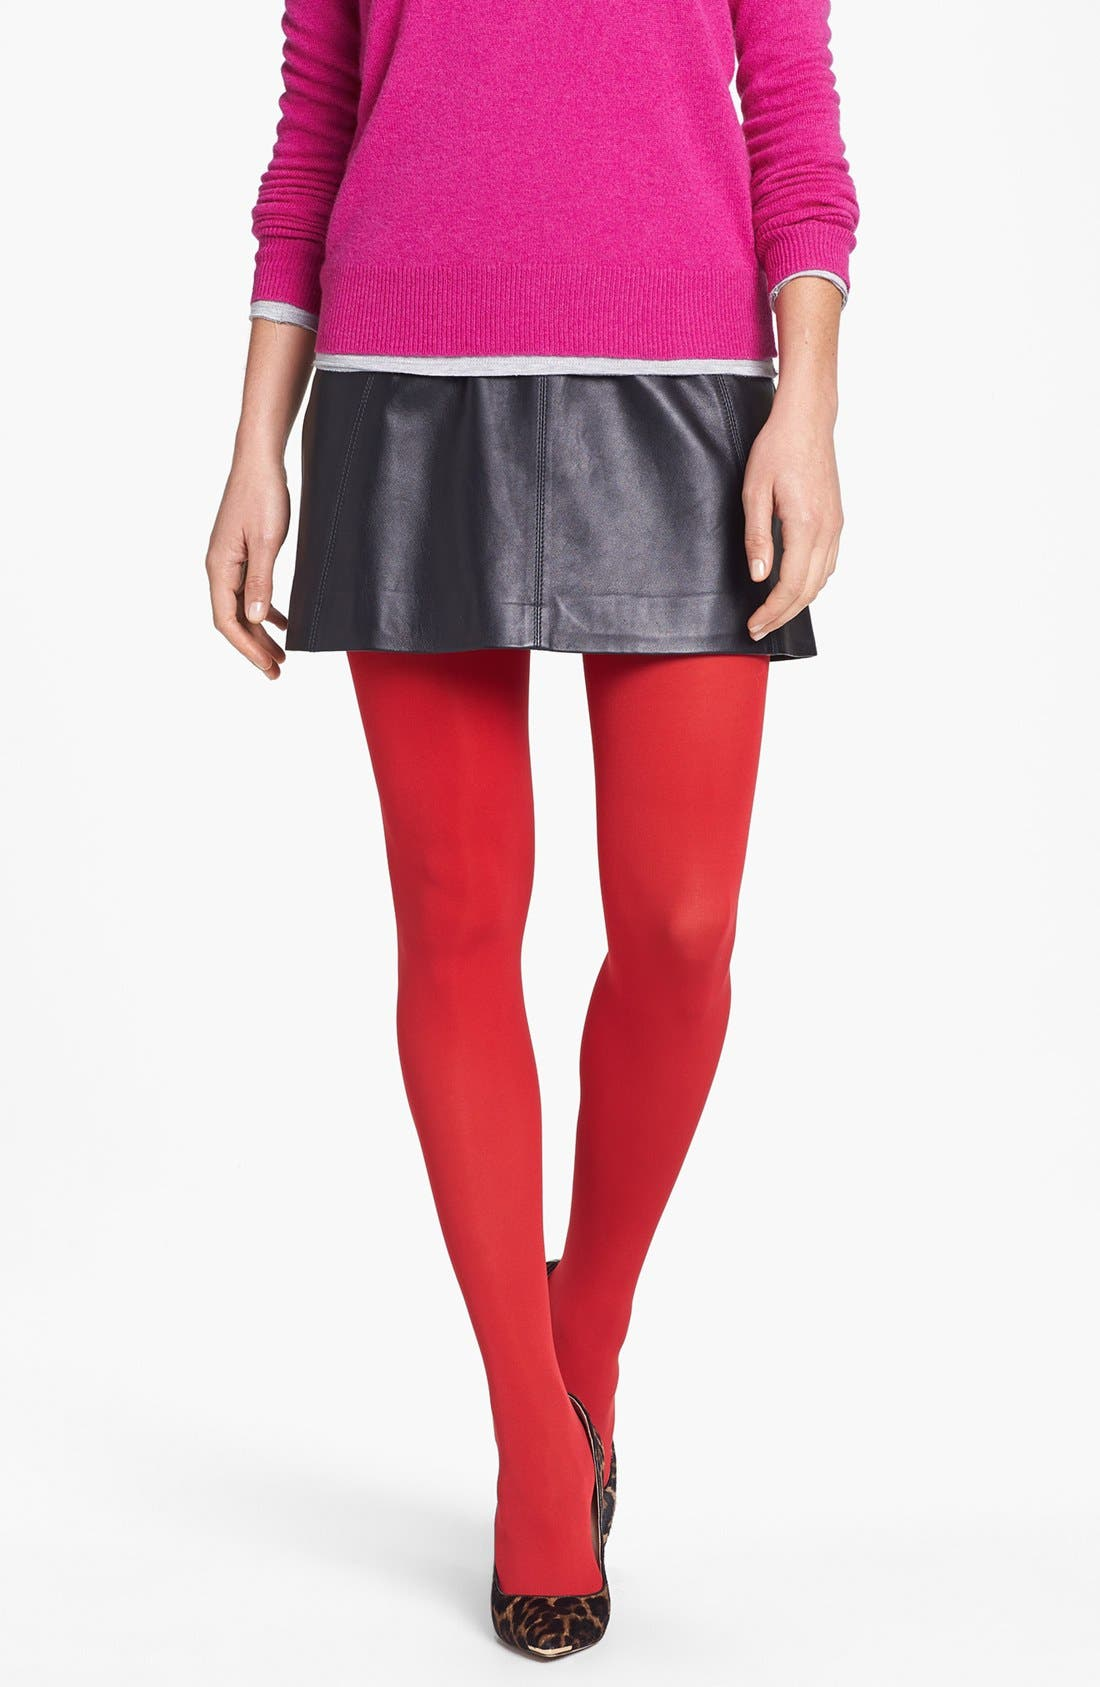 'Everyday' Opaque Tights,                             Main thumbnail 7, color,